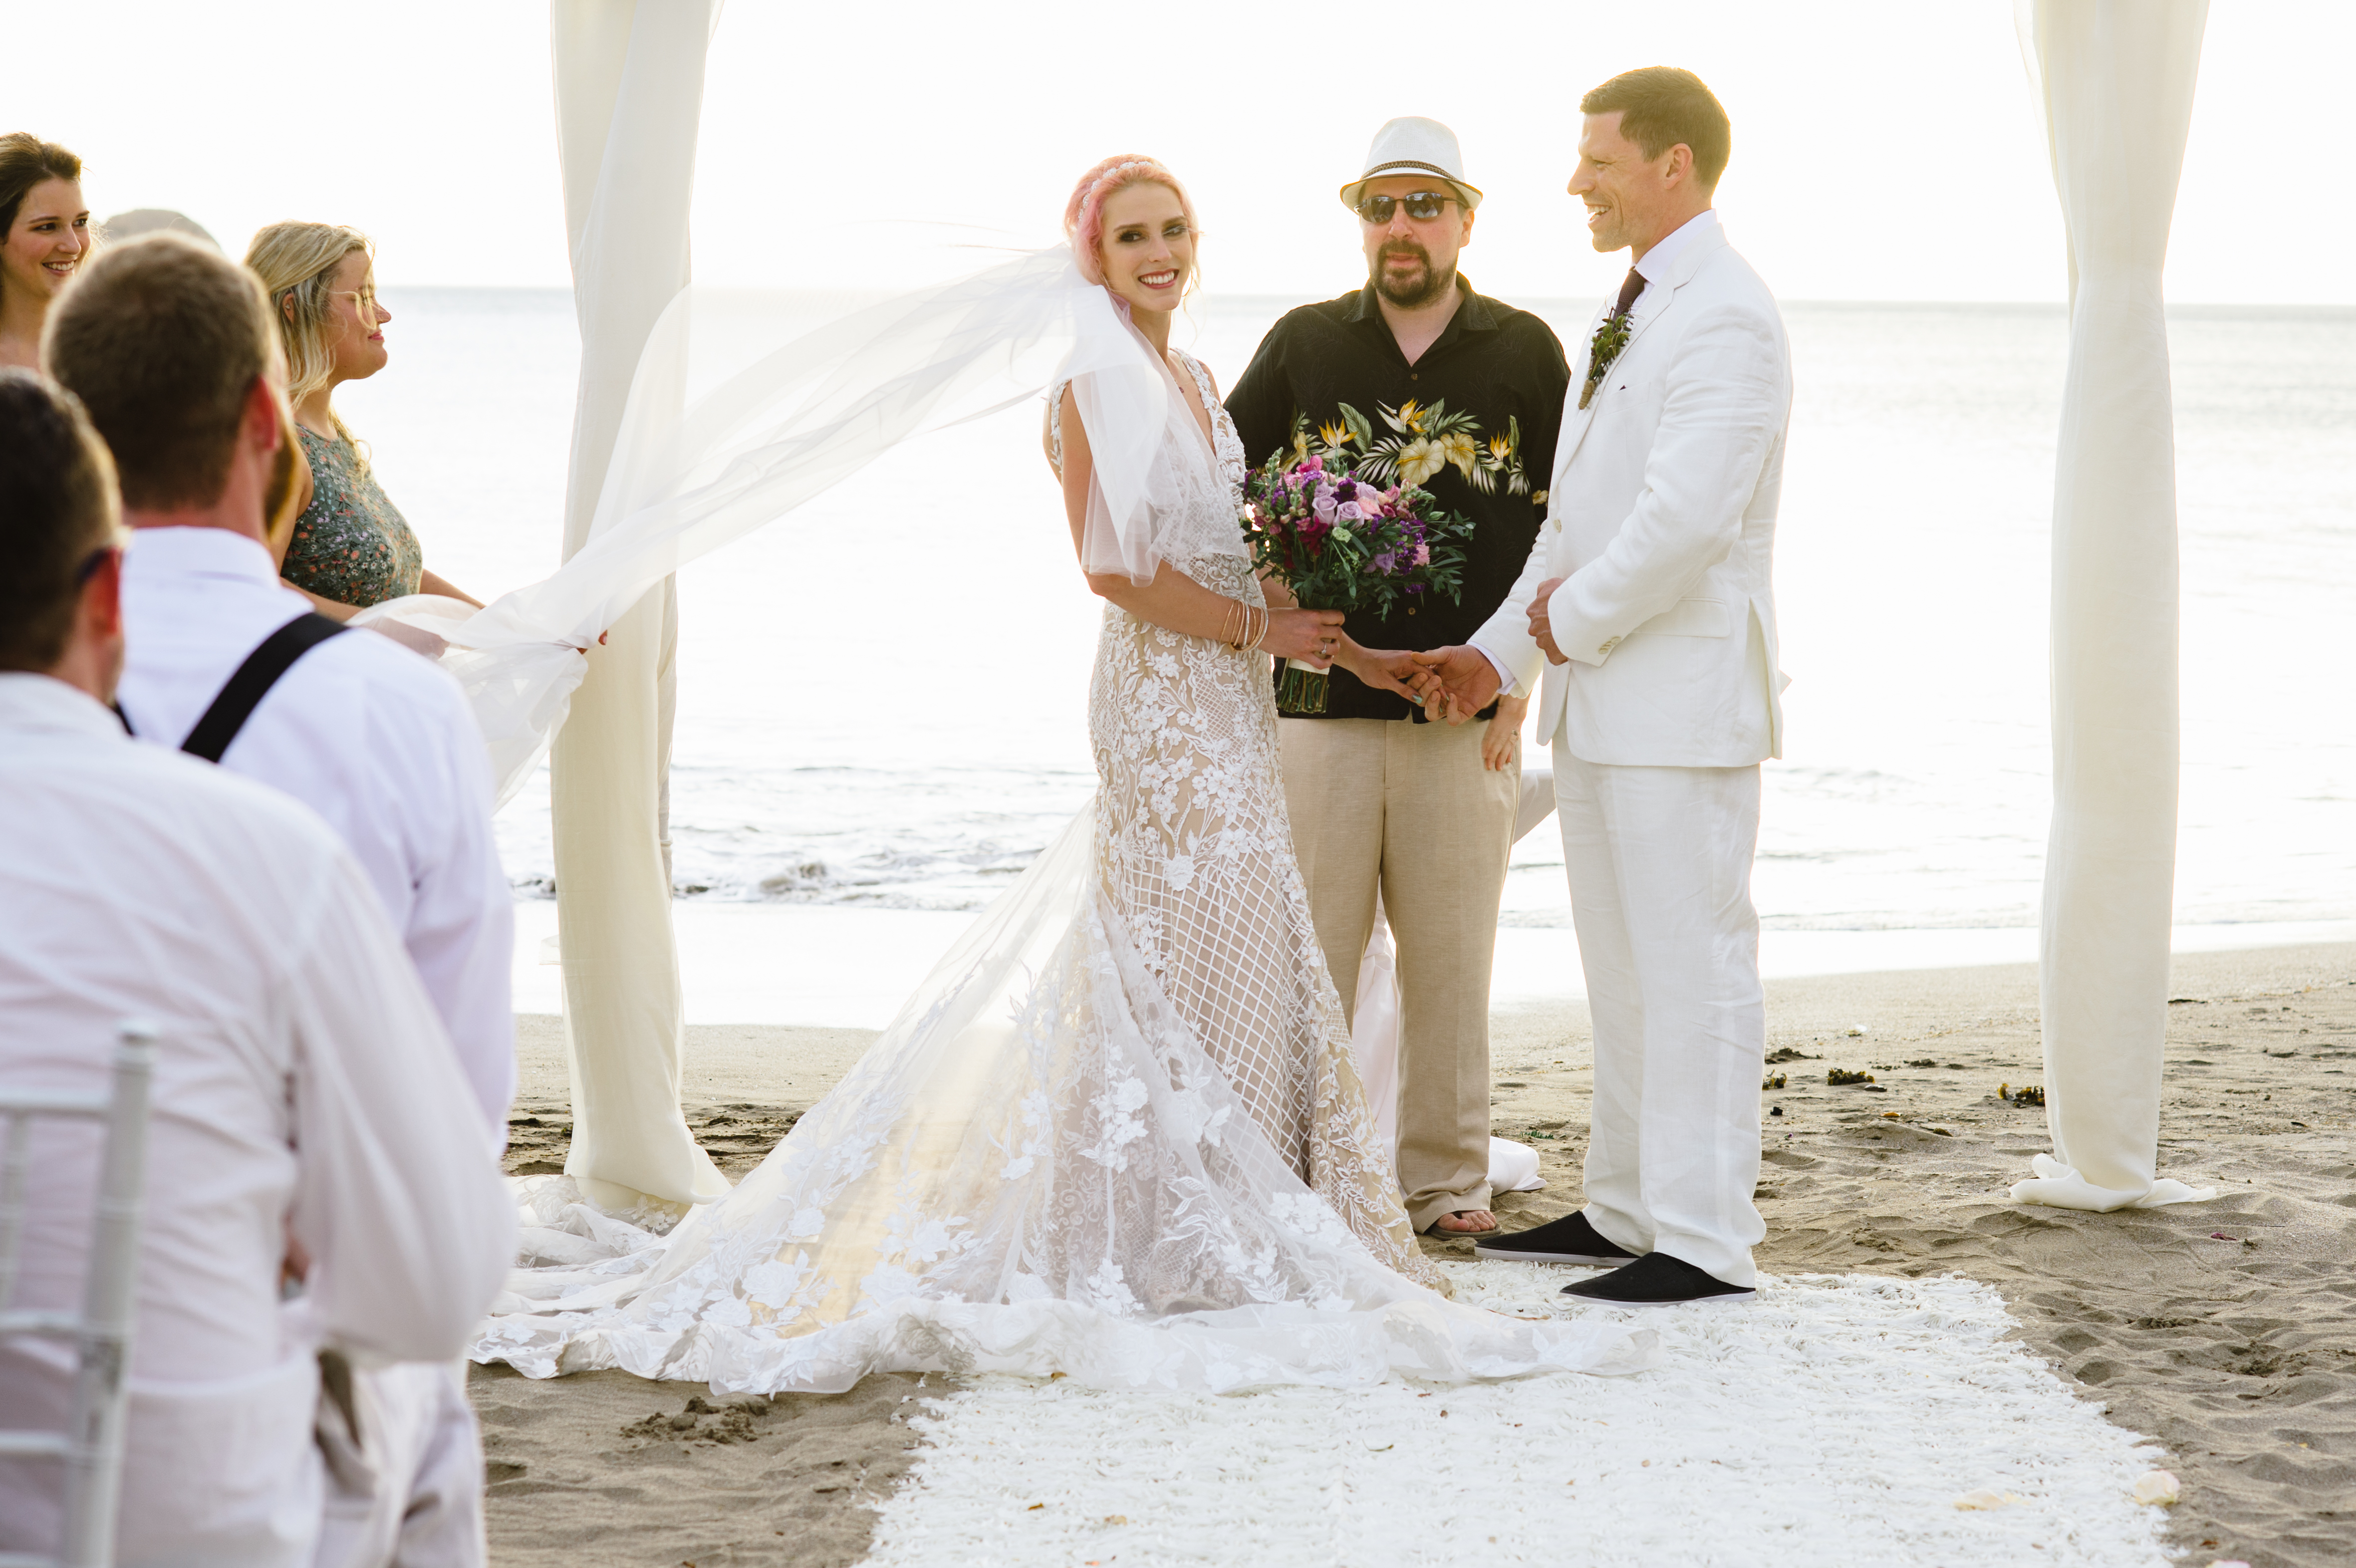 Sunset vows in Costa Rica with bride wearing anAnomalie wedding dress